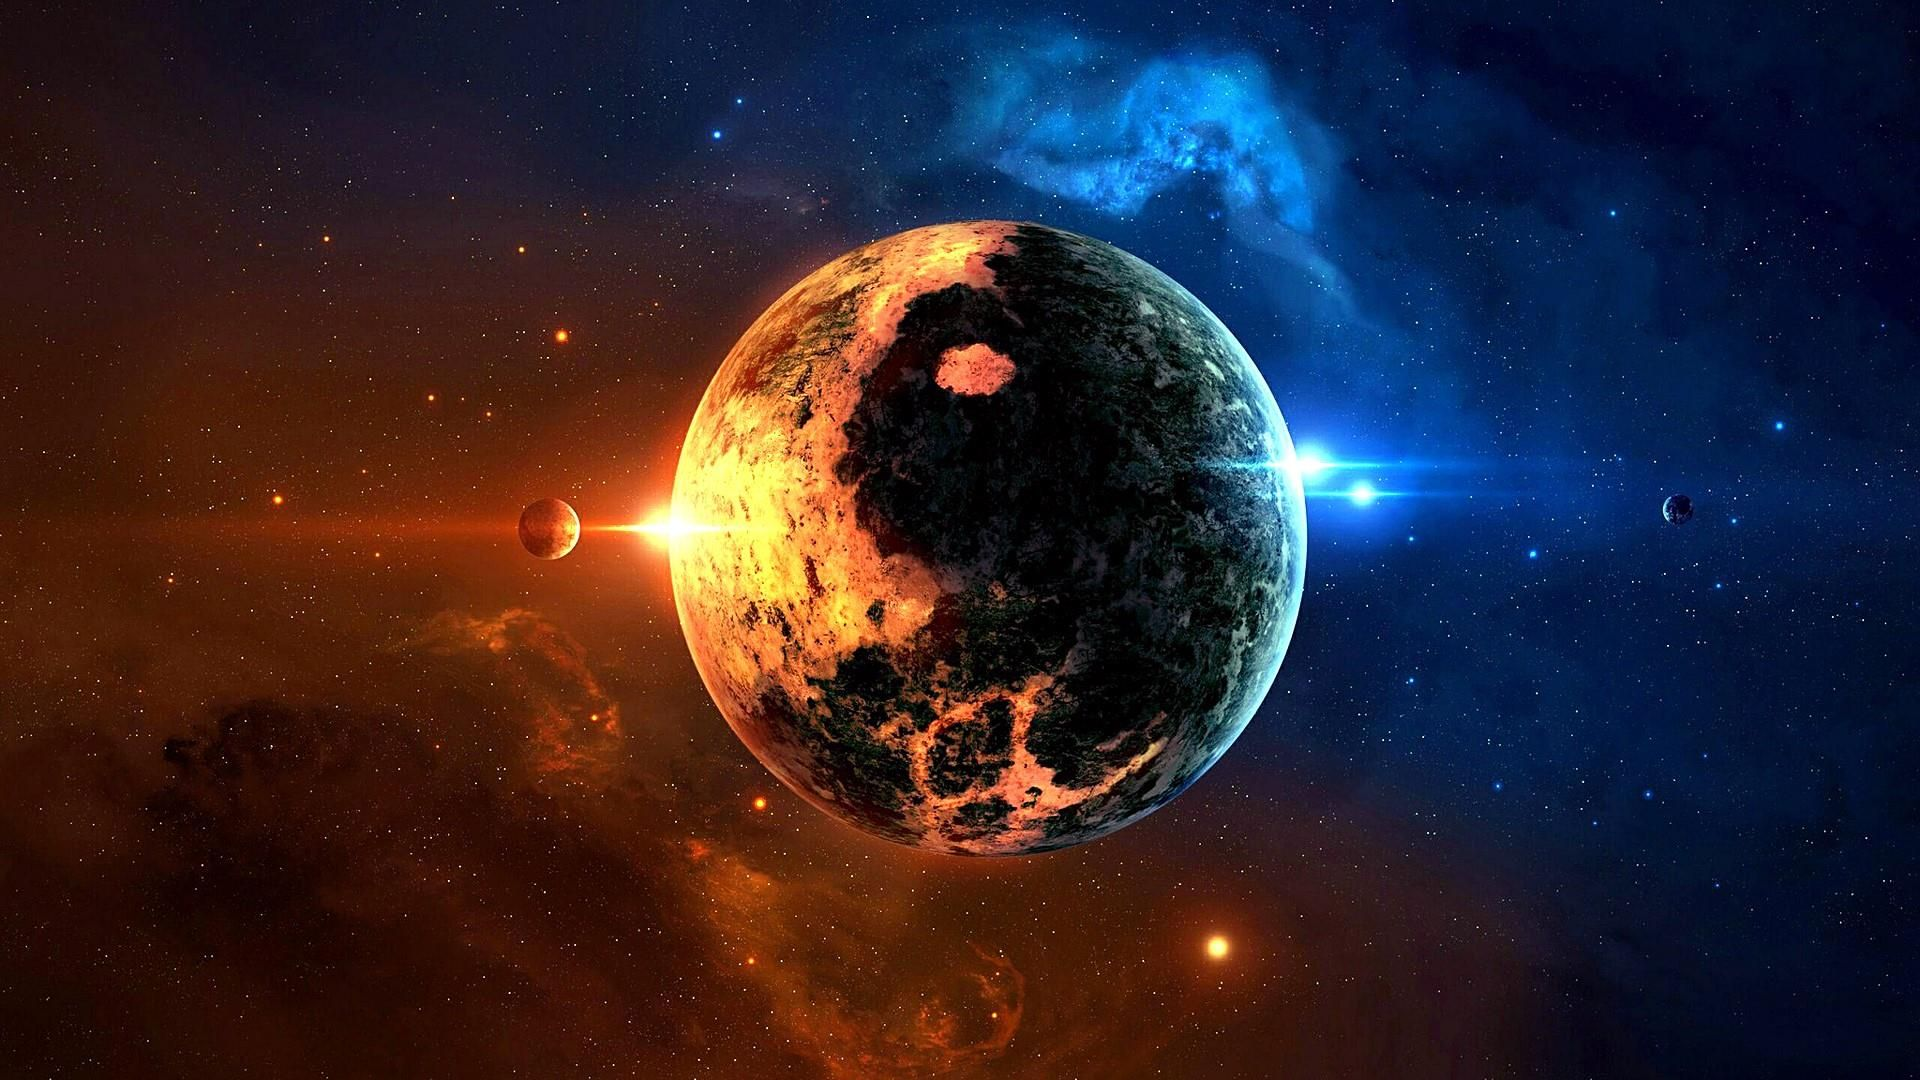 Space Themed download free wallpaper image search